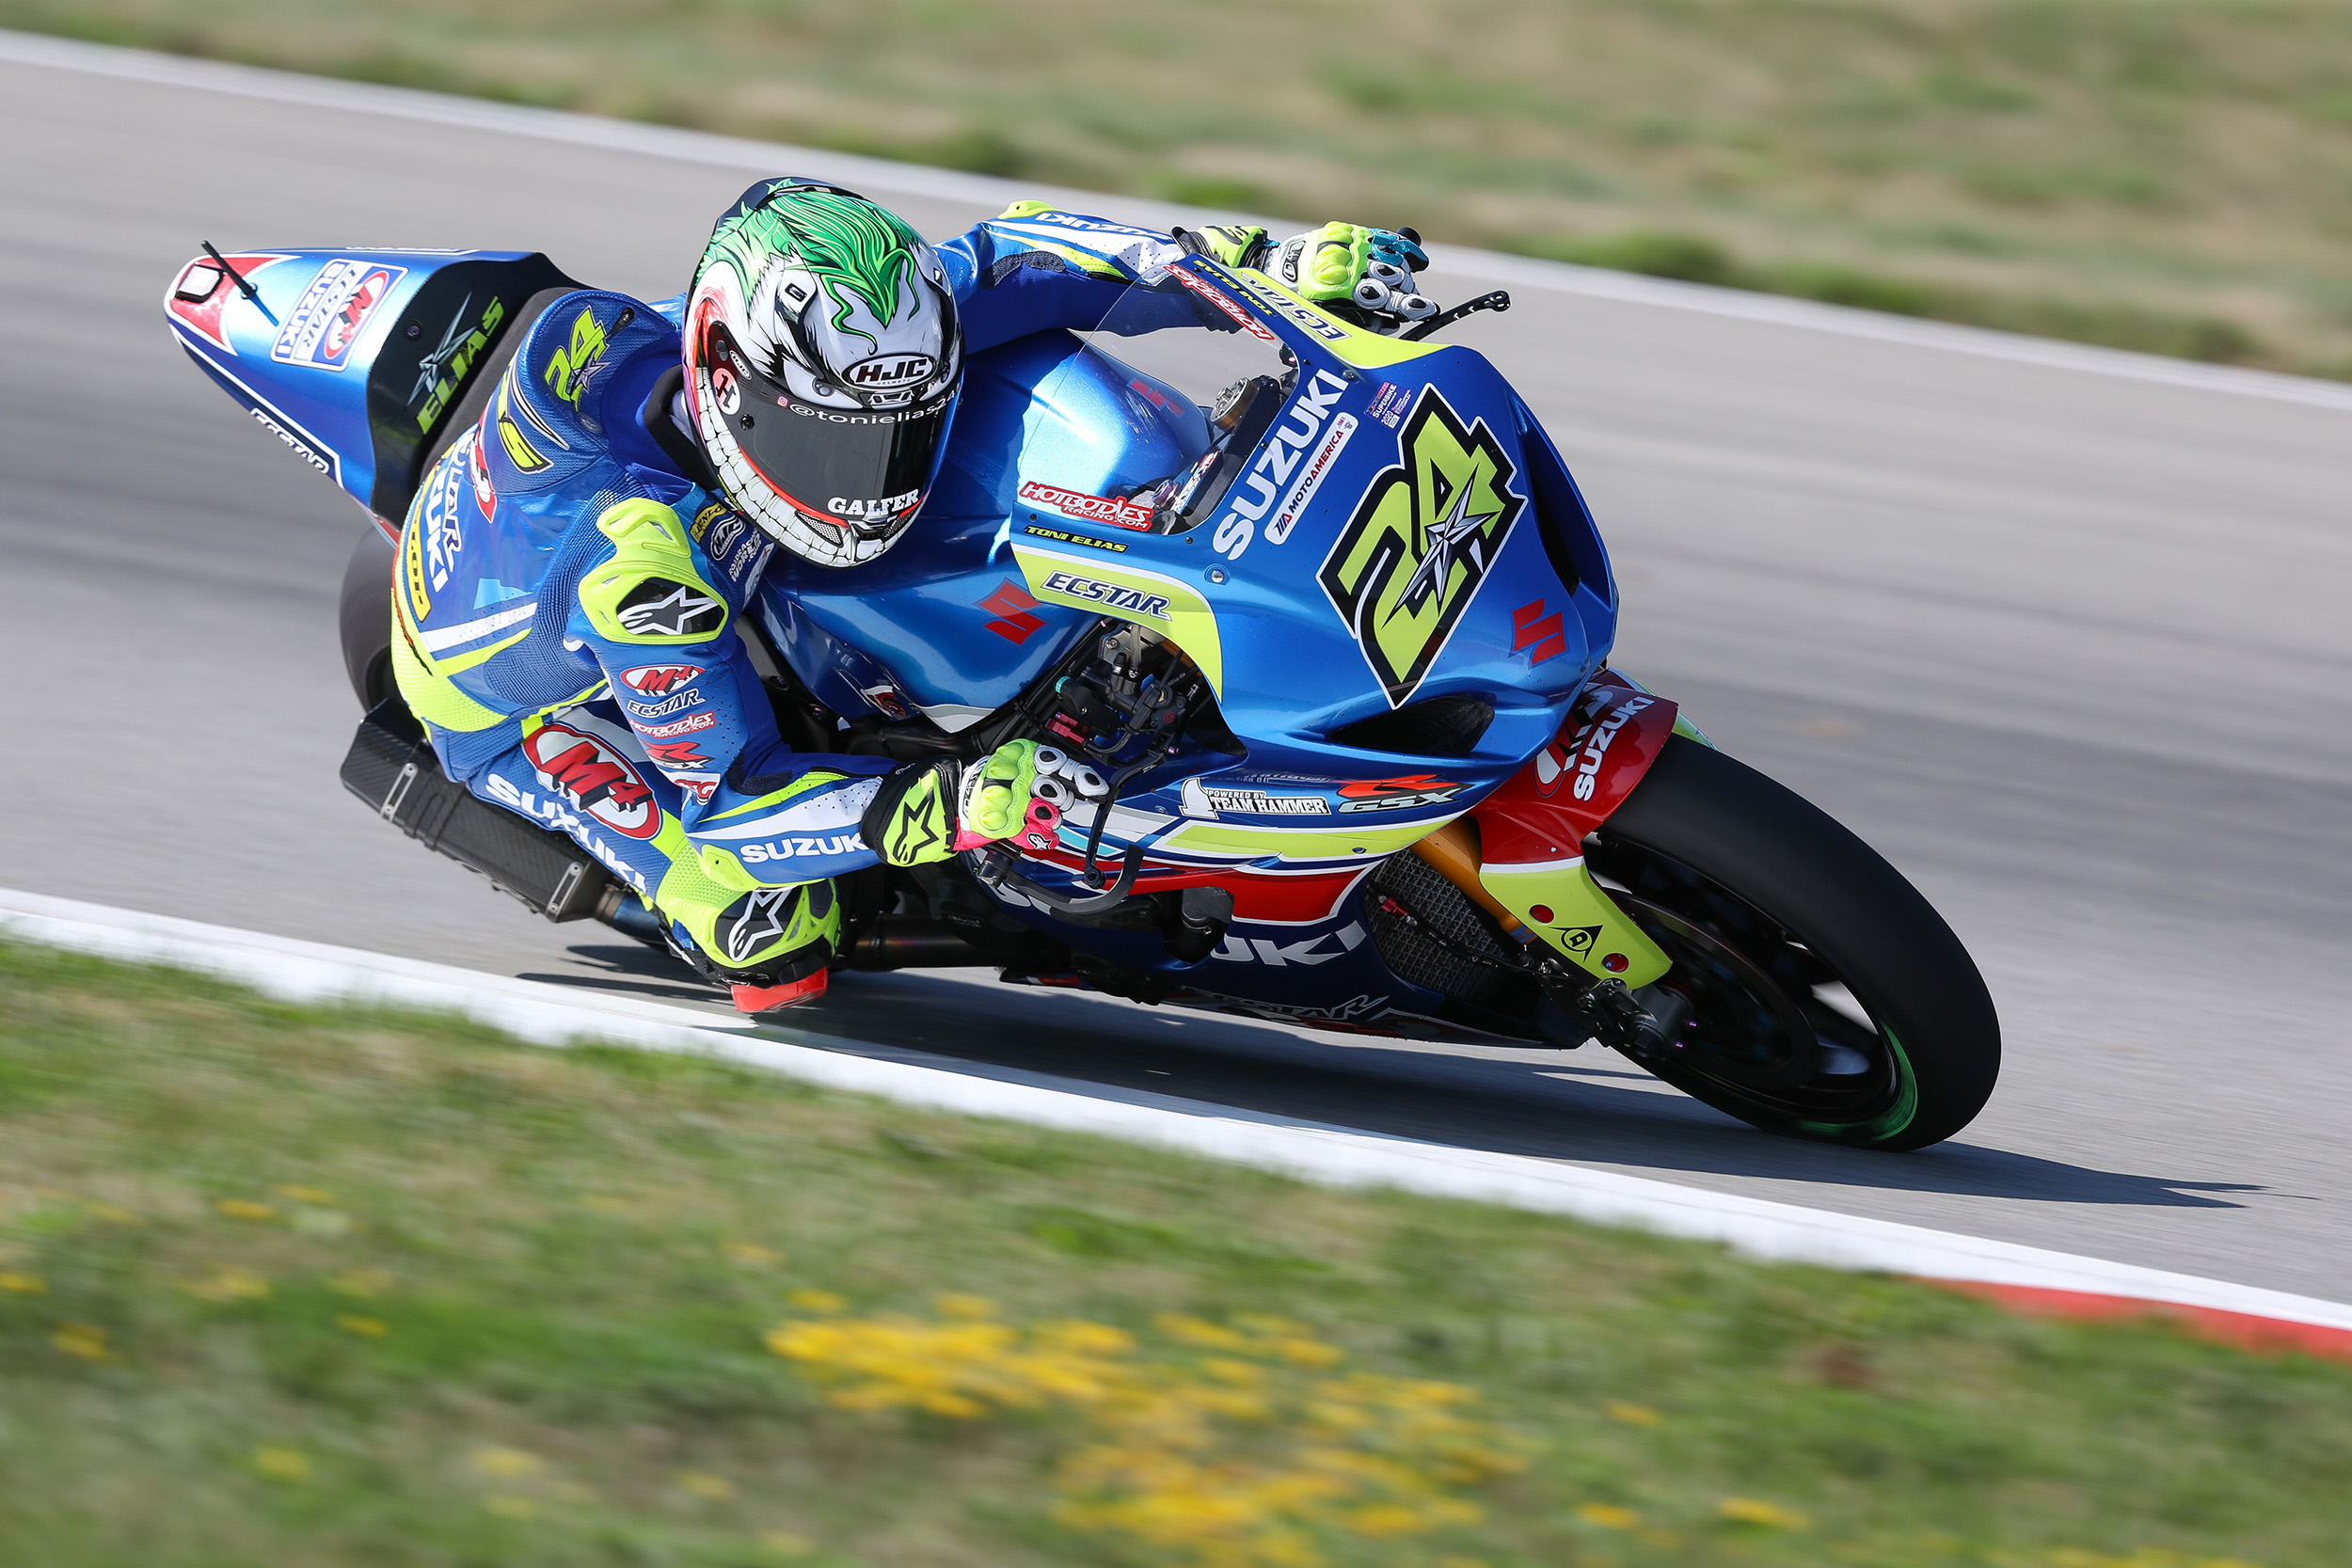 Toni Elias (#24) delivered a pair of top five finishes in Pittsburgh on his GSX-R1000